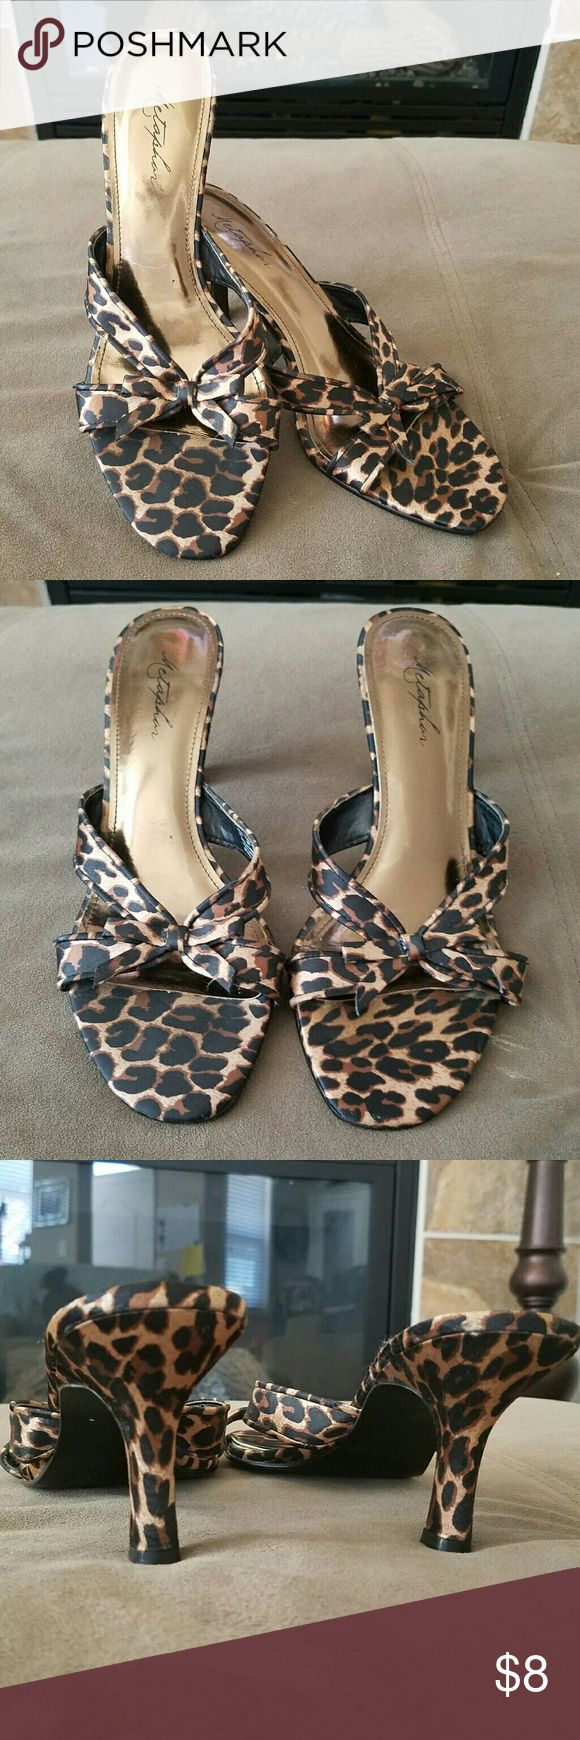 Leopard heels Leopard heels. The sole of the heel is slightly lifting, otherwise in great condition! Metaphor Shoes Heels